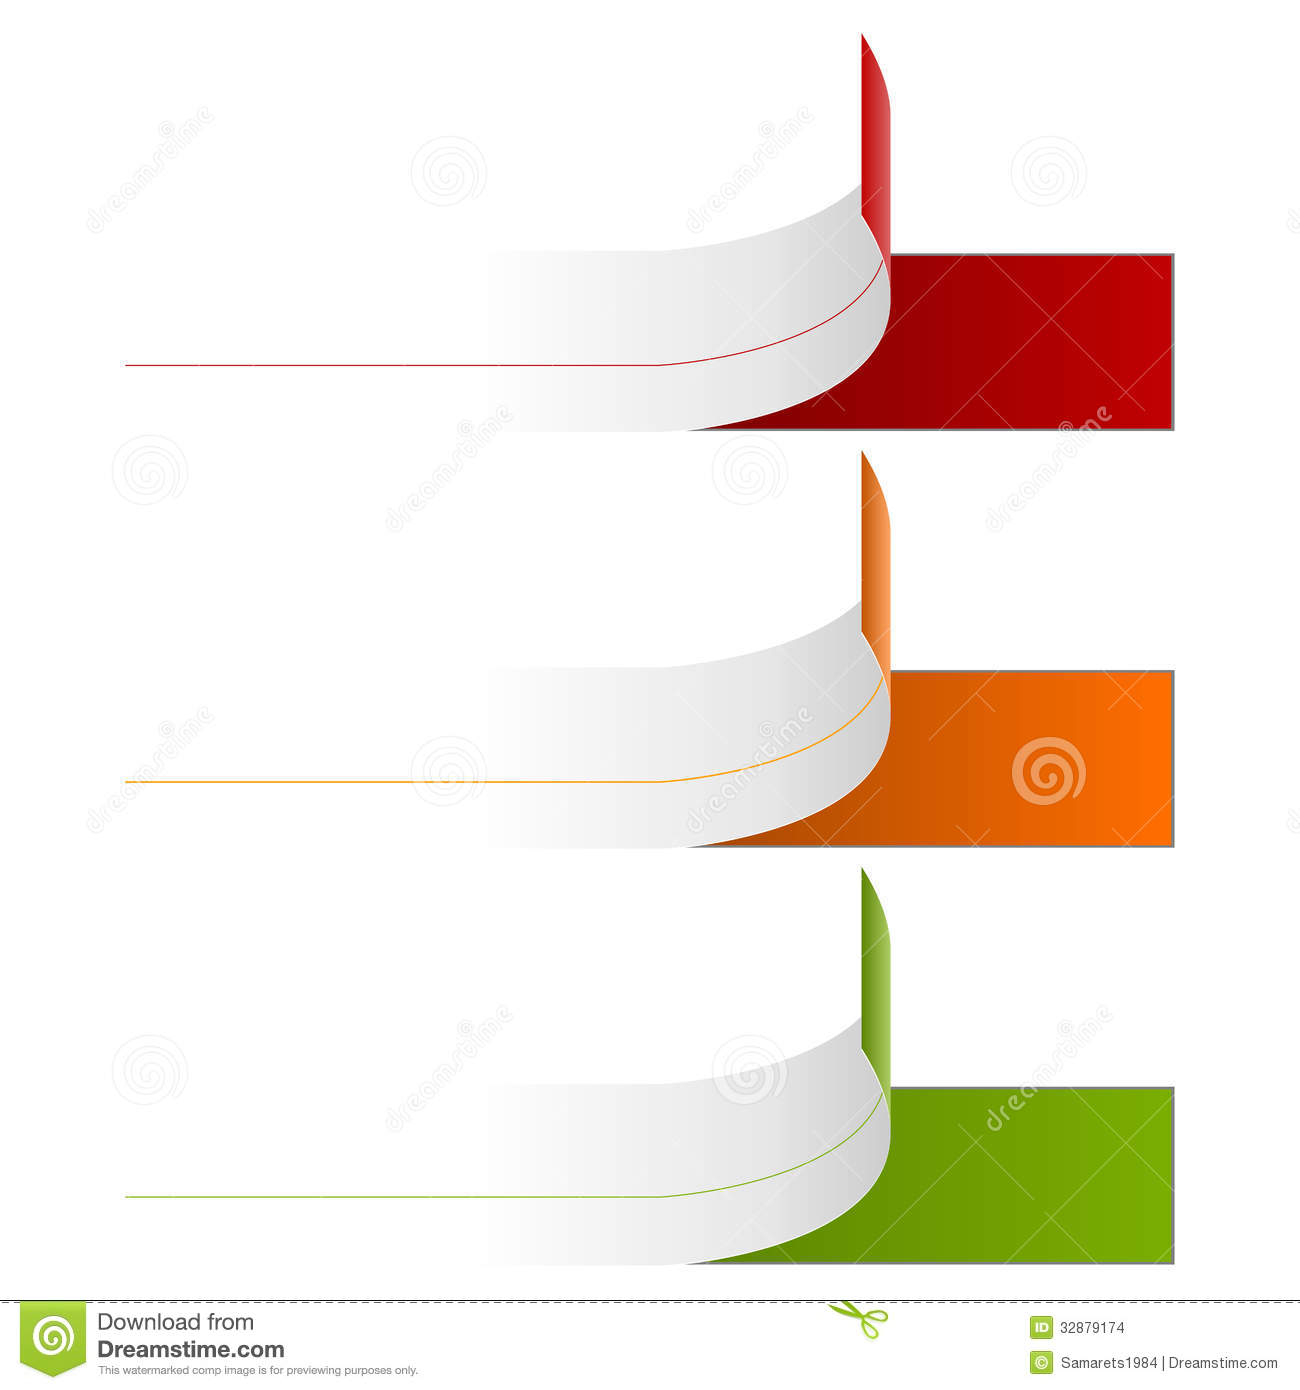 Modern Infographic. Design Elements Stock Vector - Illustration of ...